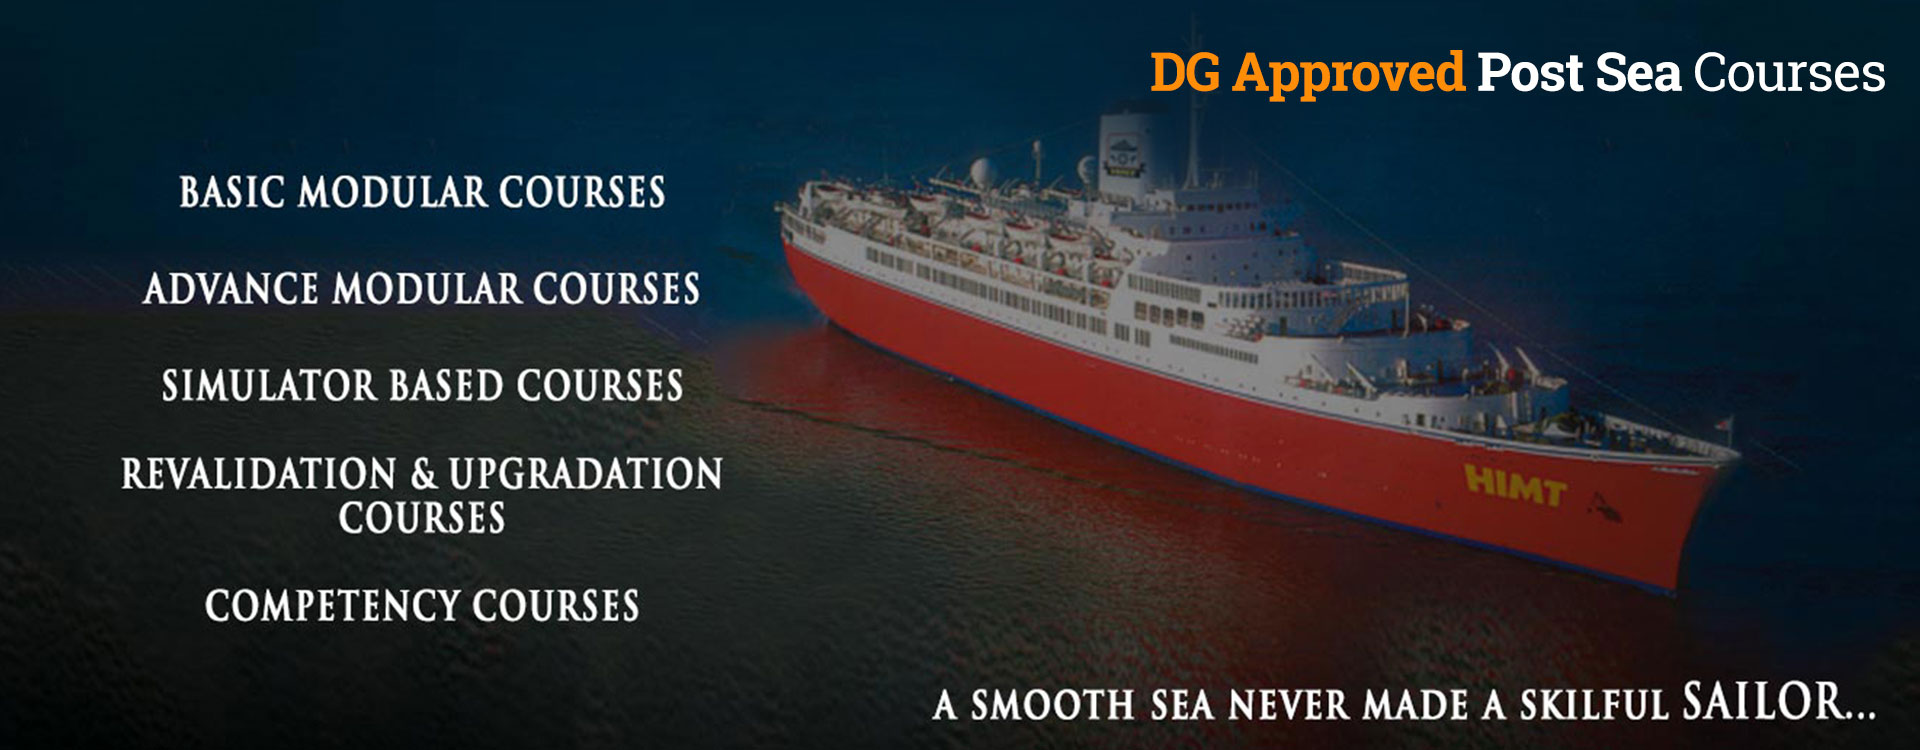 basic-modular-courses-himt-offshore-courses-himt-college, basic modular course, martime training institute, advanced modular courses, chief engineer revalidation courses, largest maritime institute, refresher training and updating course in chennai